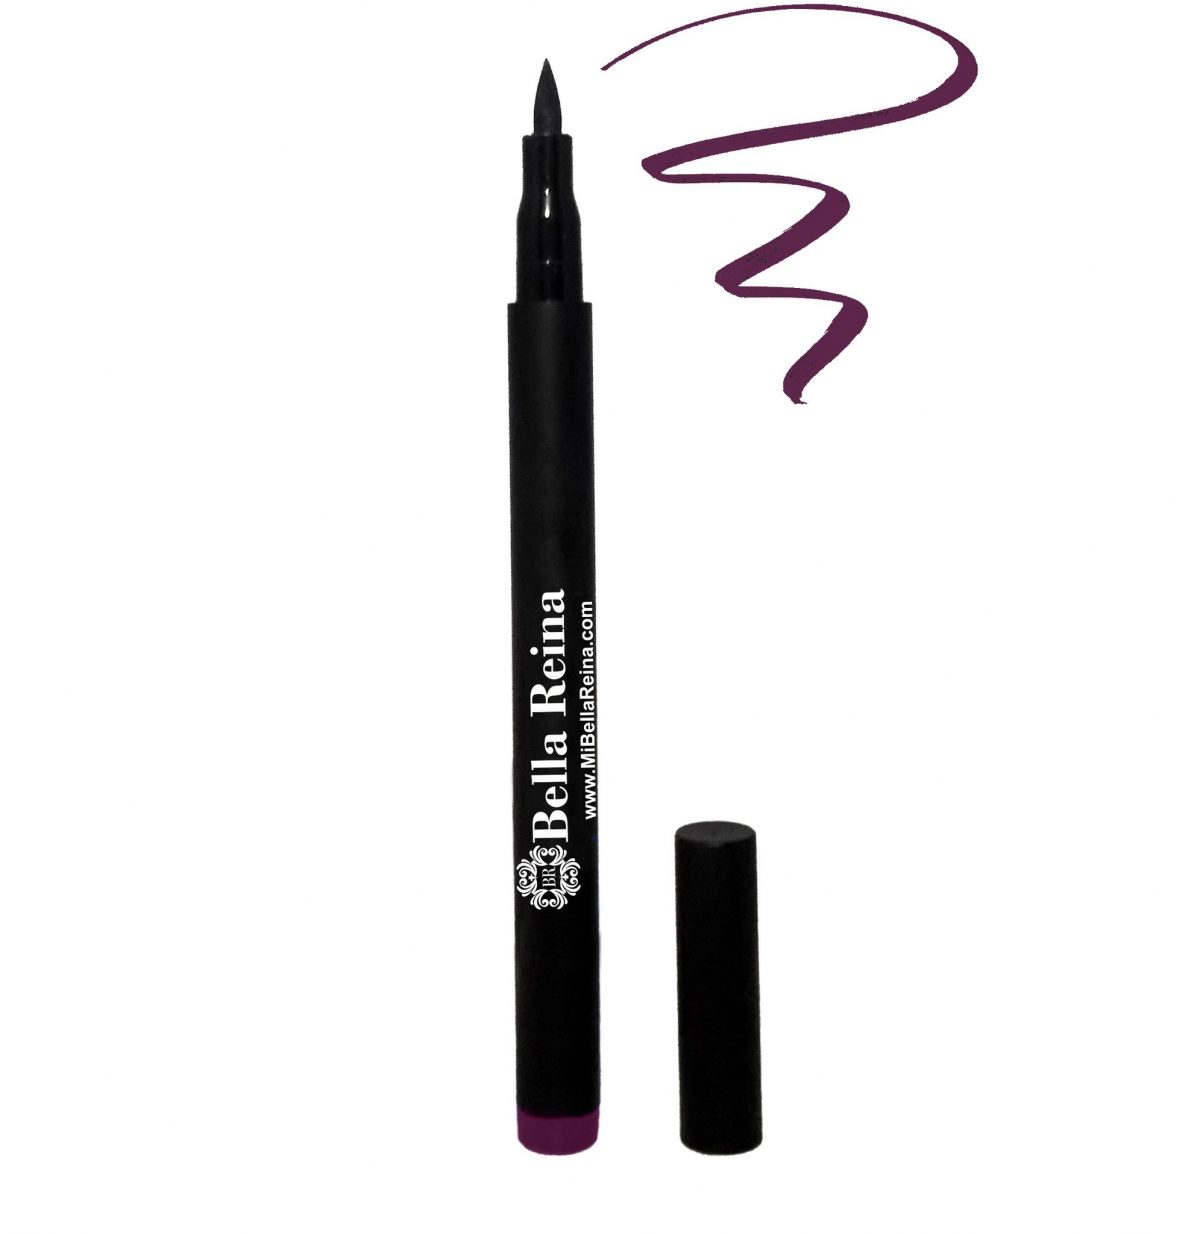 Waterproof Eyeliner Felt Tip Pen - by Bella Reina